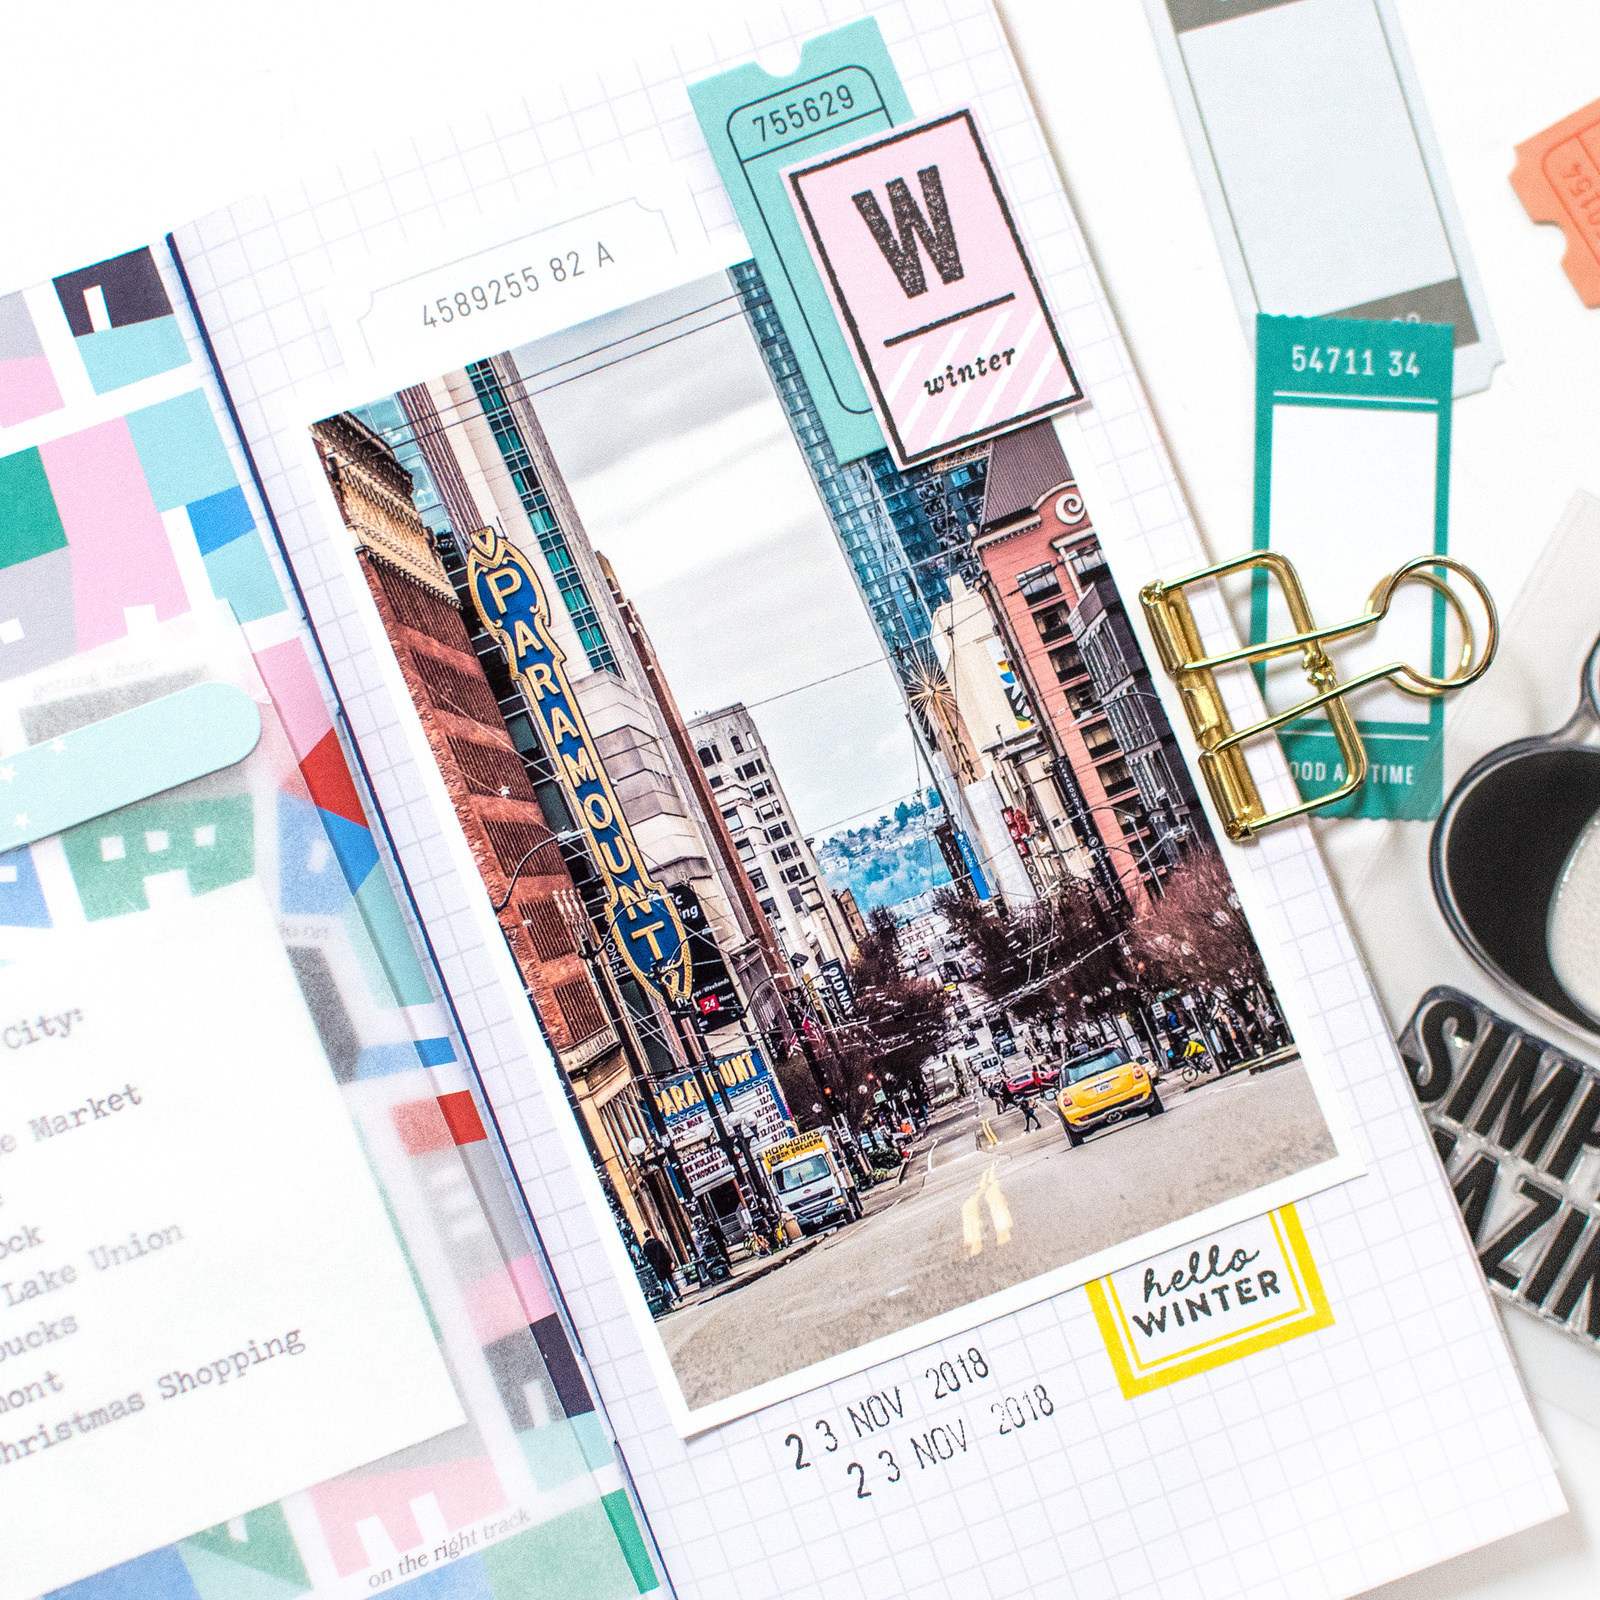 Blog Take A Sneak Peek At Decembers Kits Studio Calico Electronics Projects For Dummies Peak Catch Of The City Sidewalks Tn Kit On Maries Fun Project That Patterned Page Is Perfect Match Her Photo